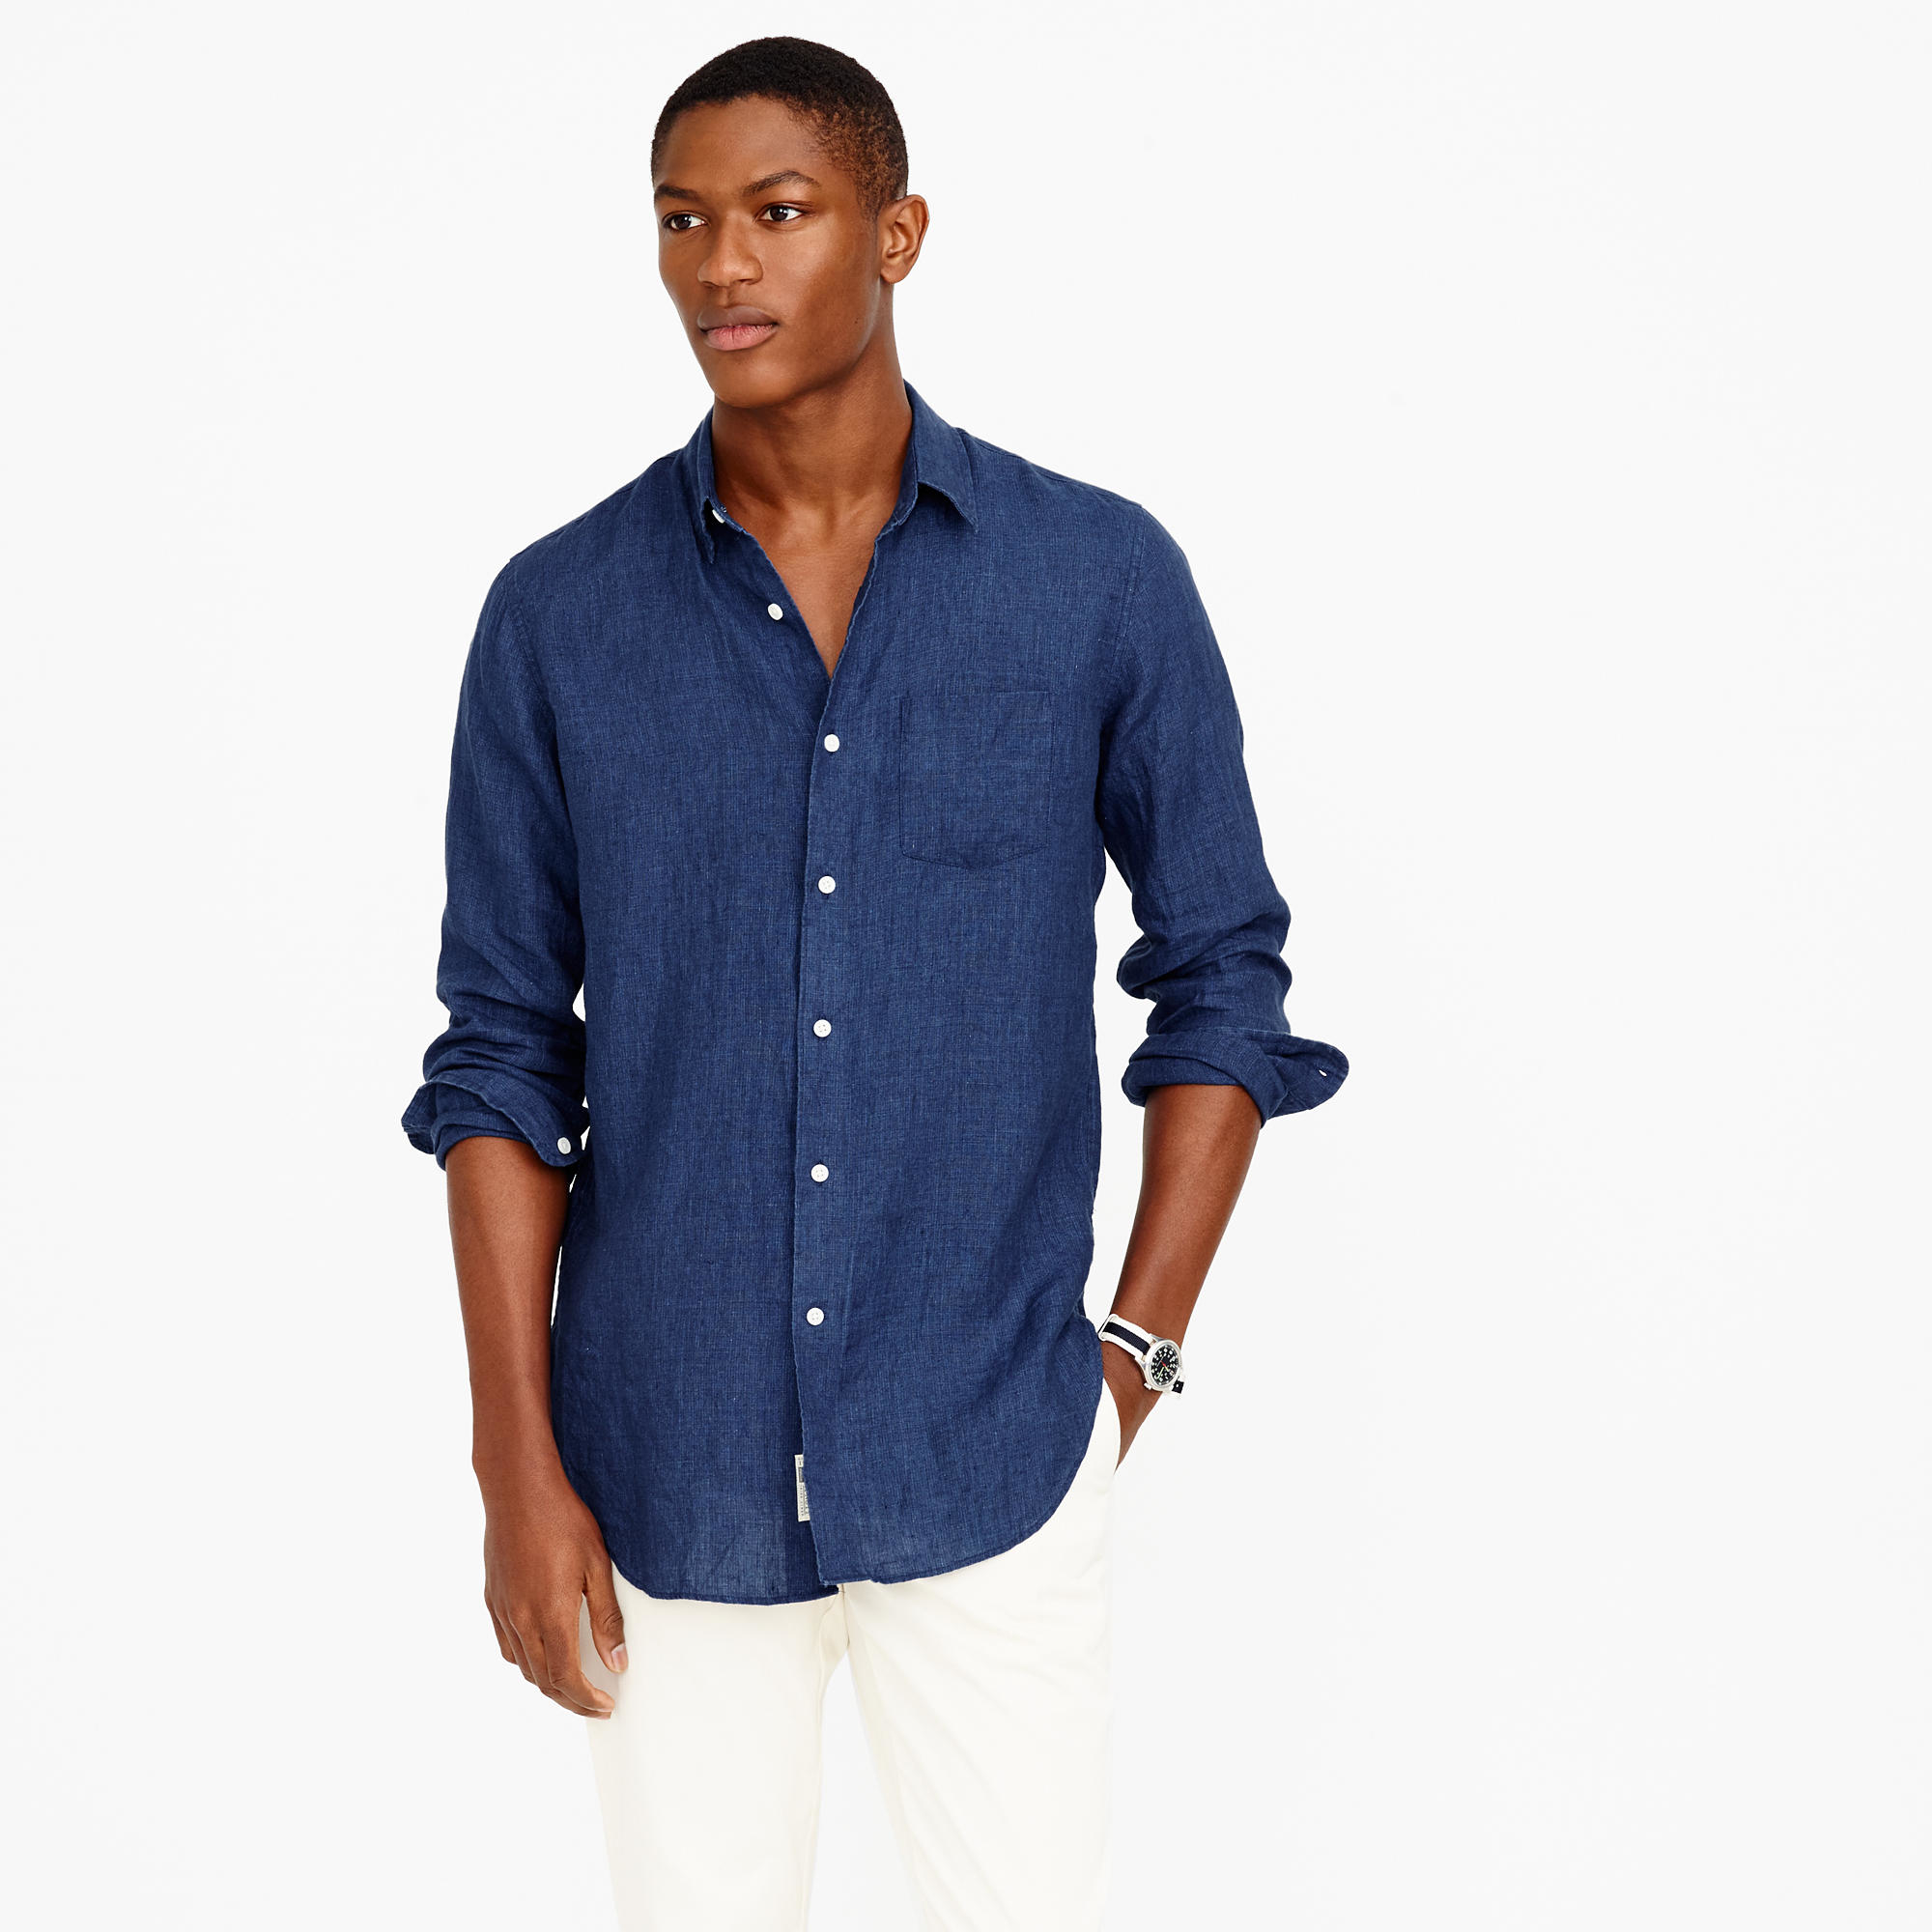 96459bc63ce Mens Irish Linen Shirts – EDGE Engineering and Consulting Limited